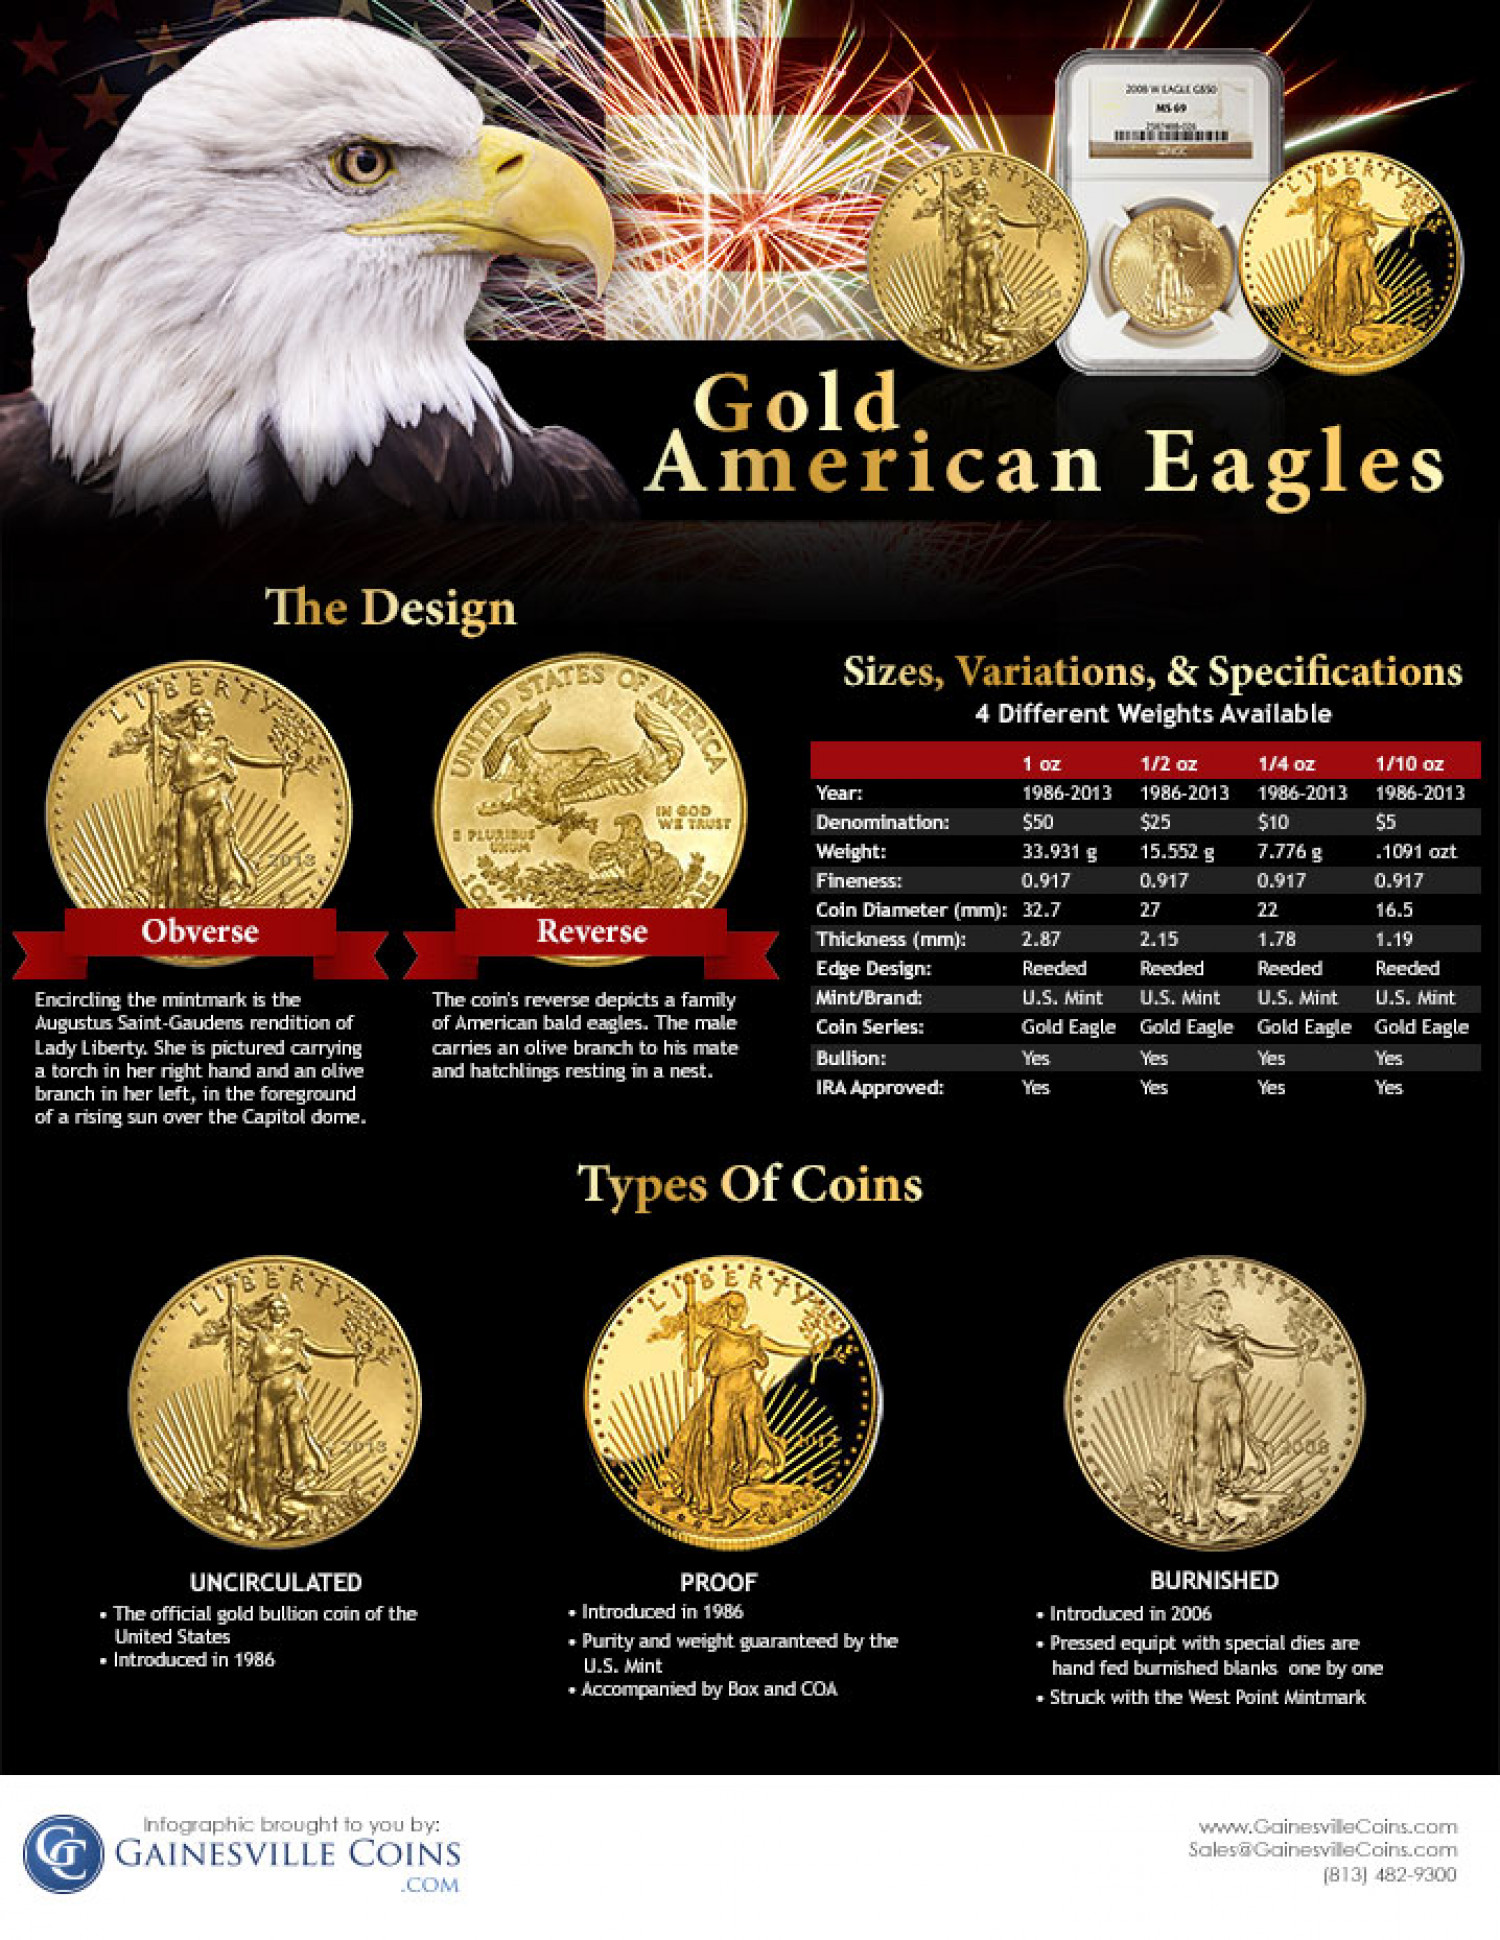 American Gold Eagle Coins Infographic